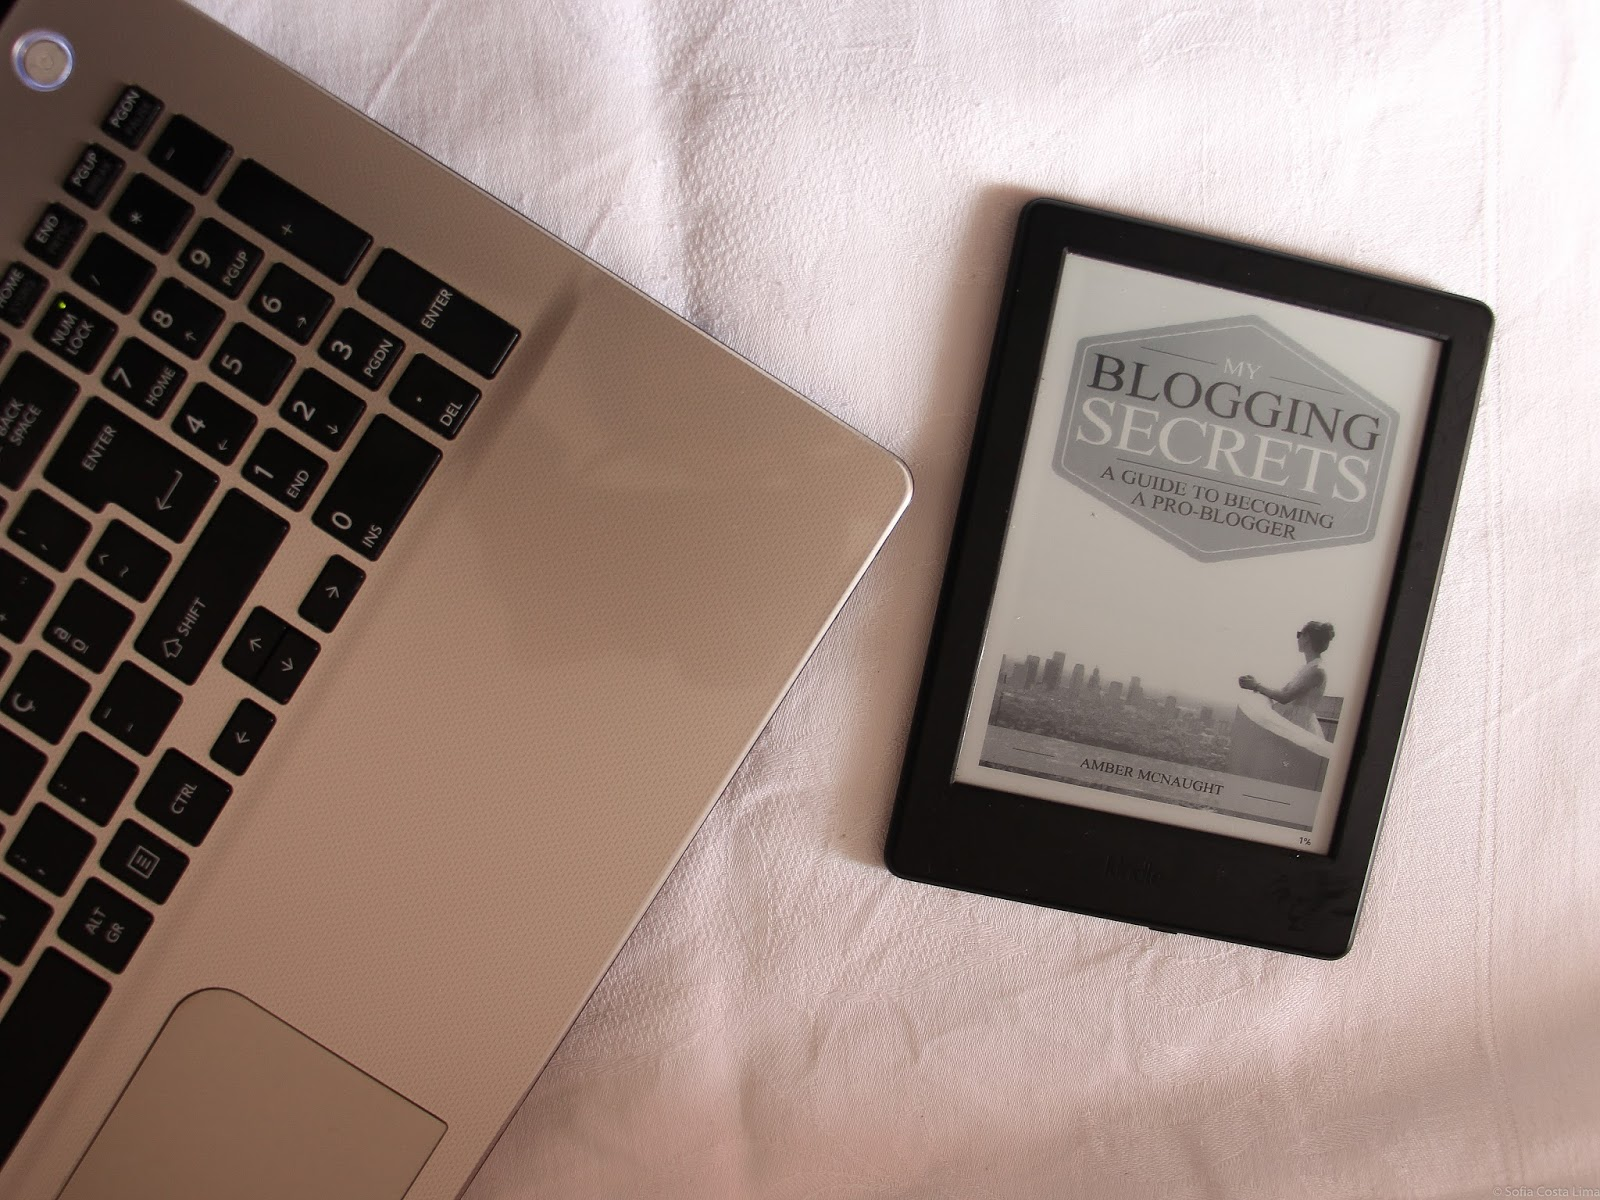 My Blogging Secrets - Amber McNaught